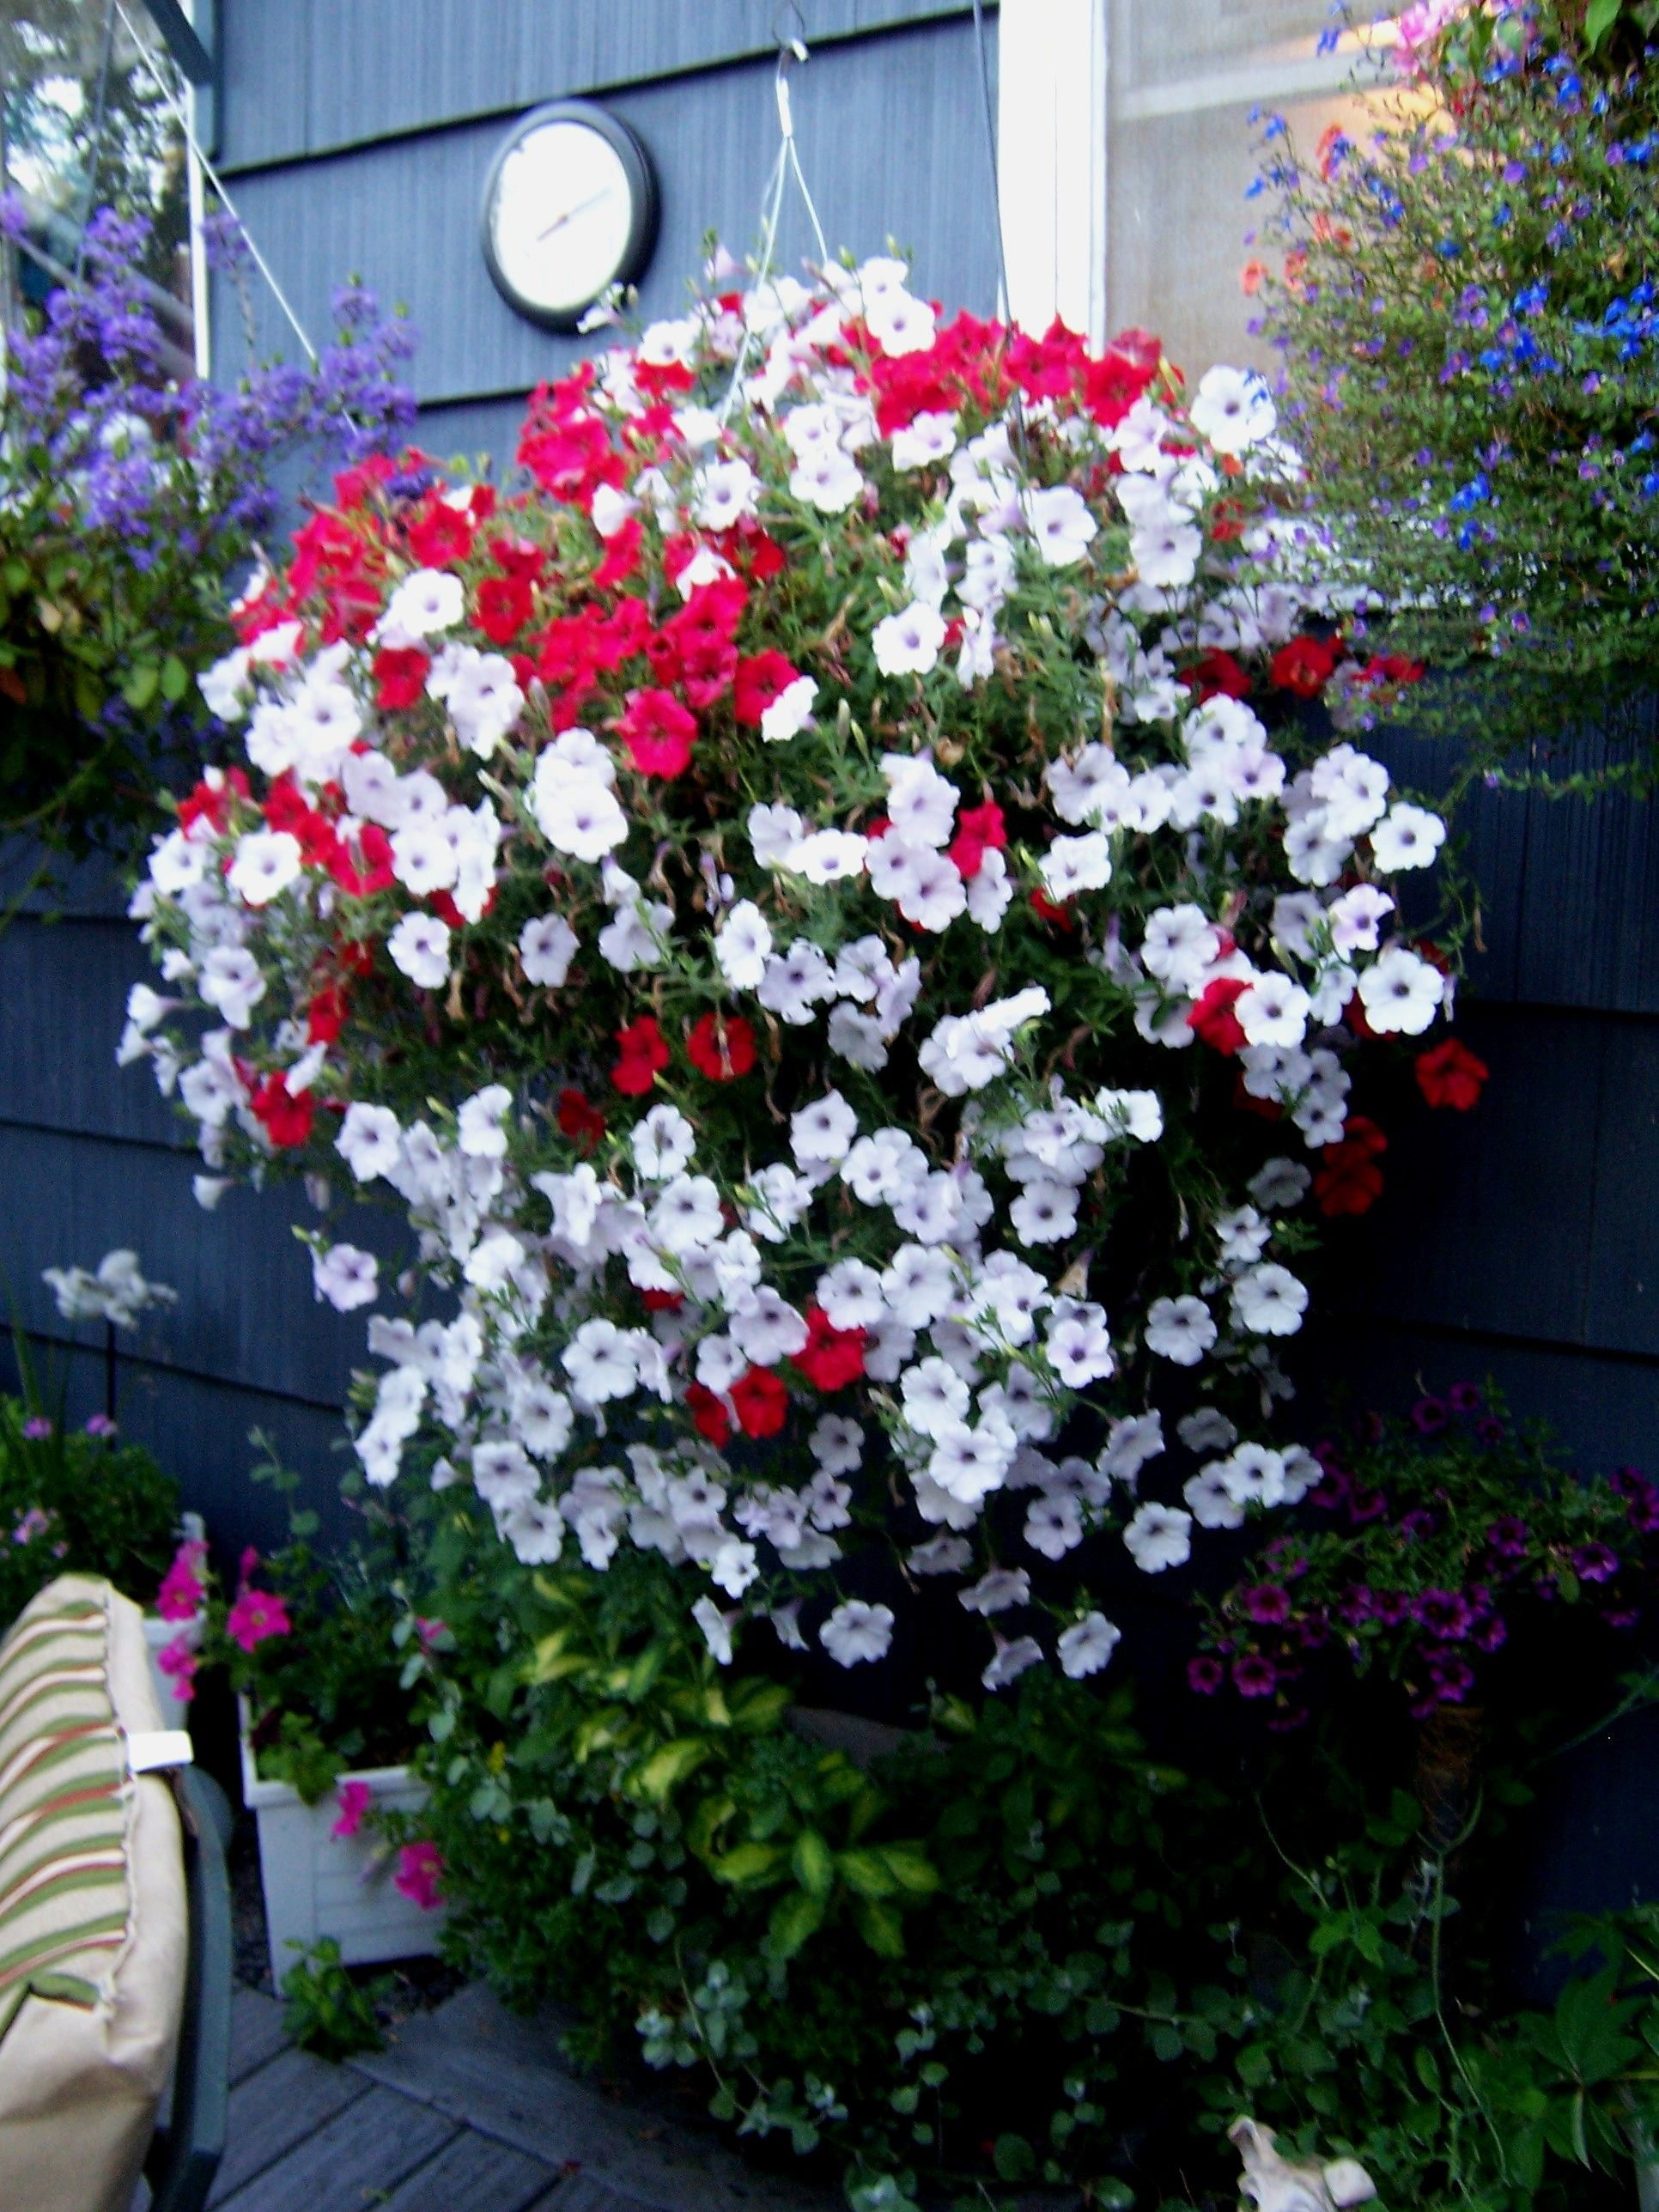 Red And White Petunia Basket Hanging Plants Hanging Garden Flower Planters